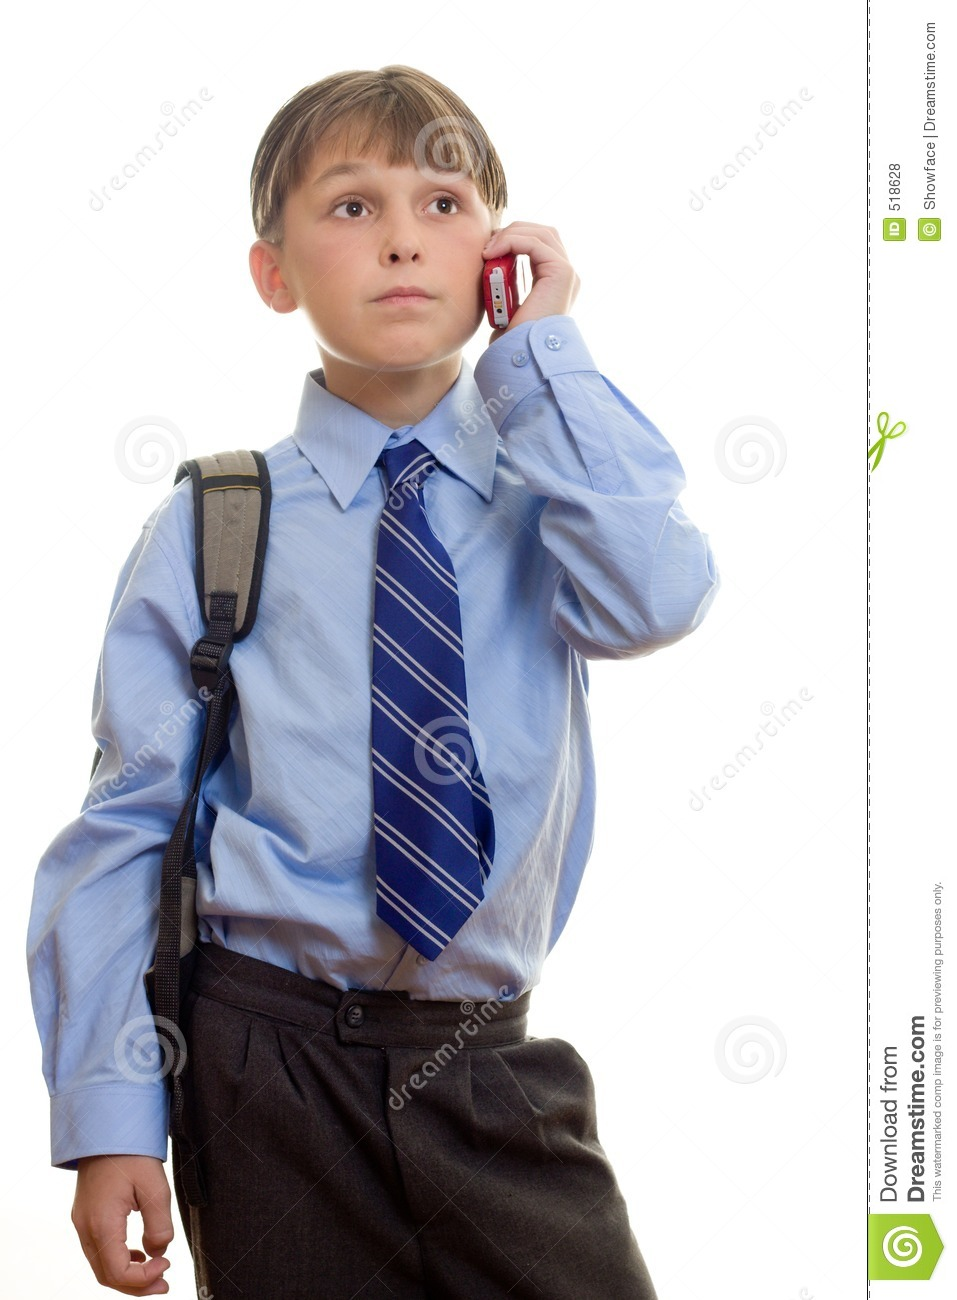 Student with Phone to Ear